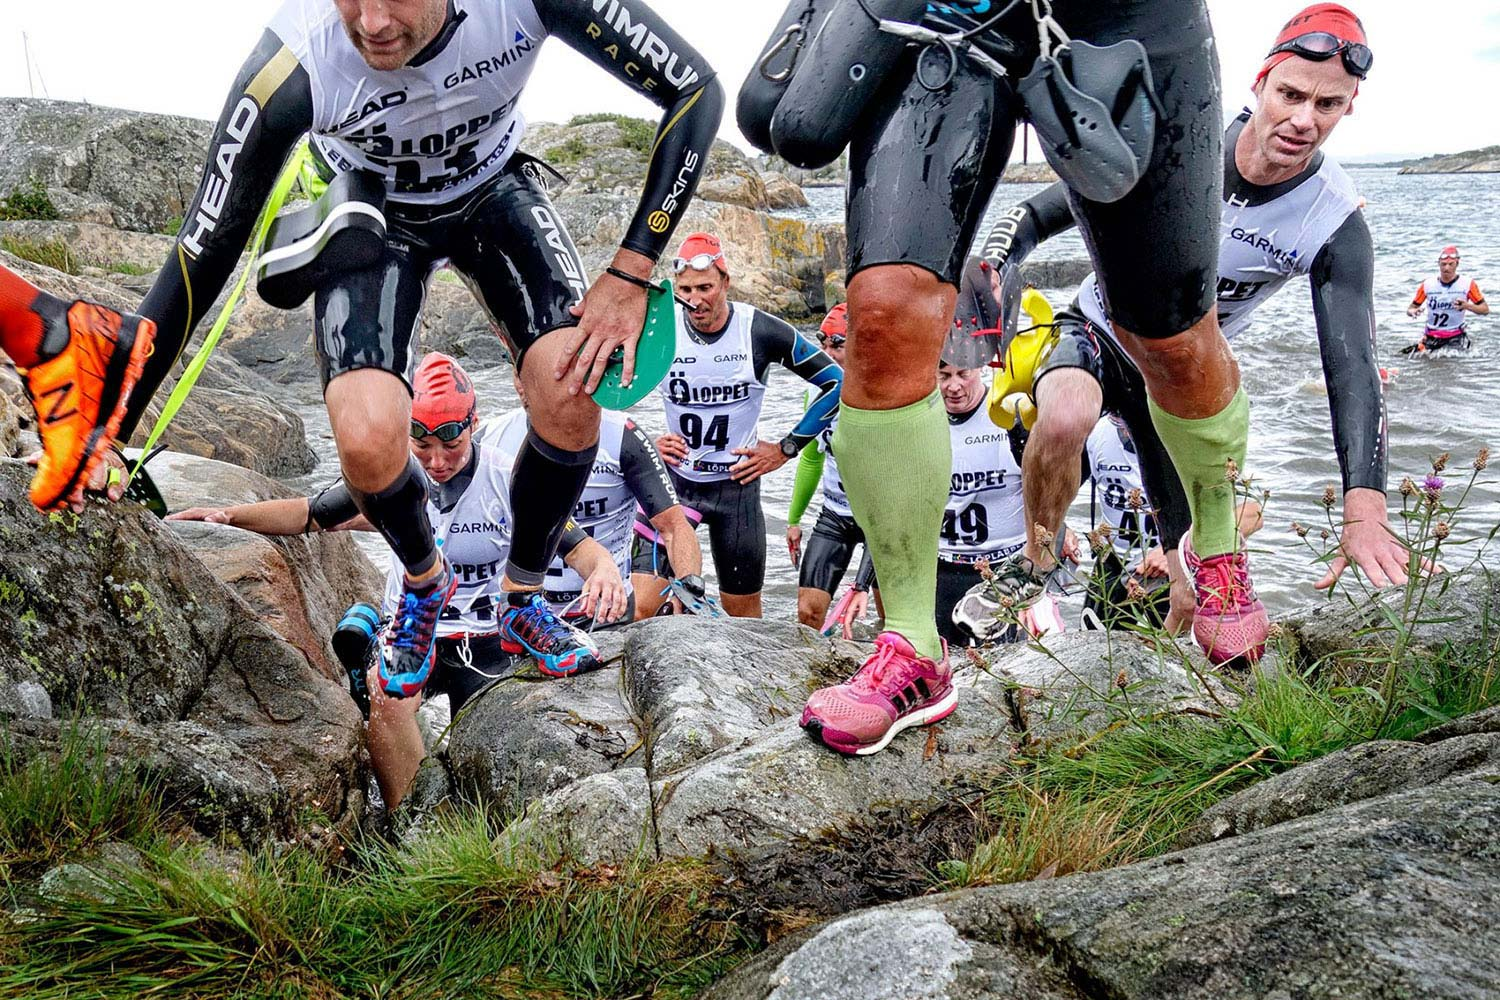 Swimrun Photo by Lisa Thanner